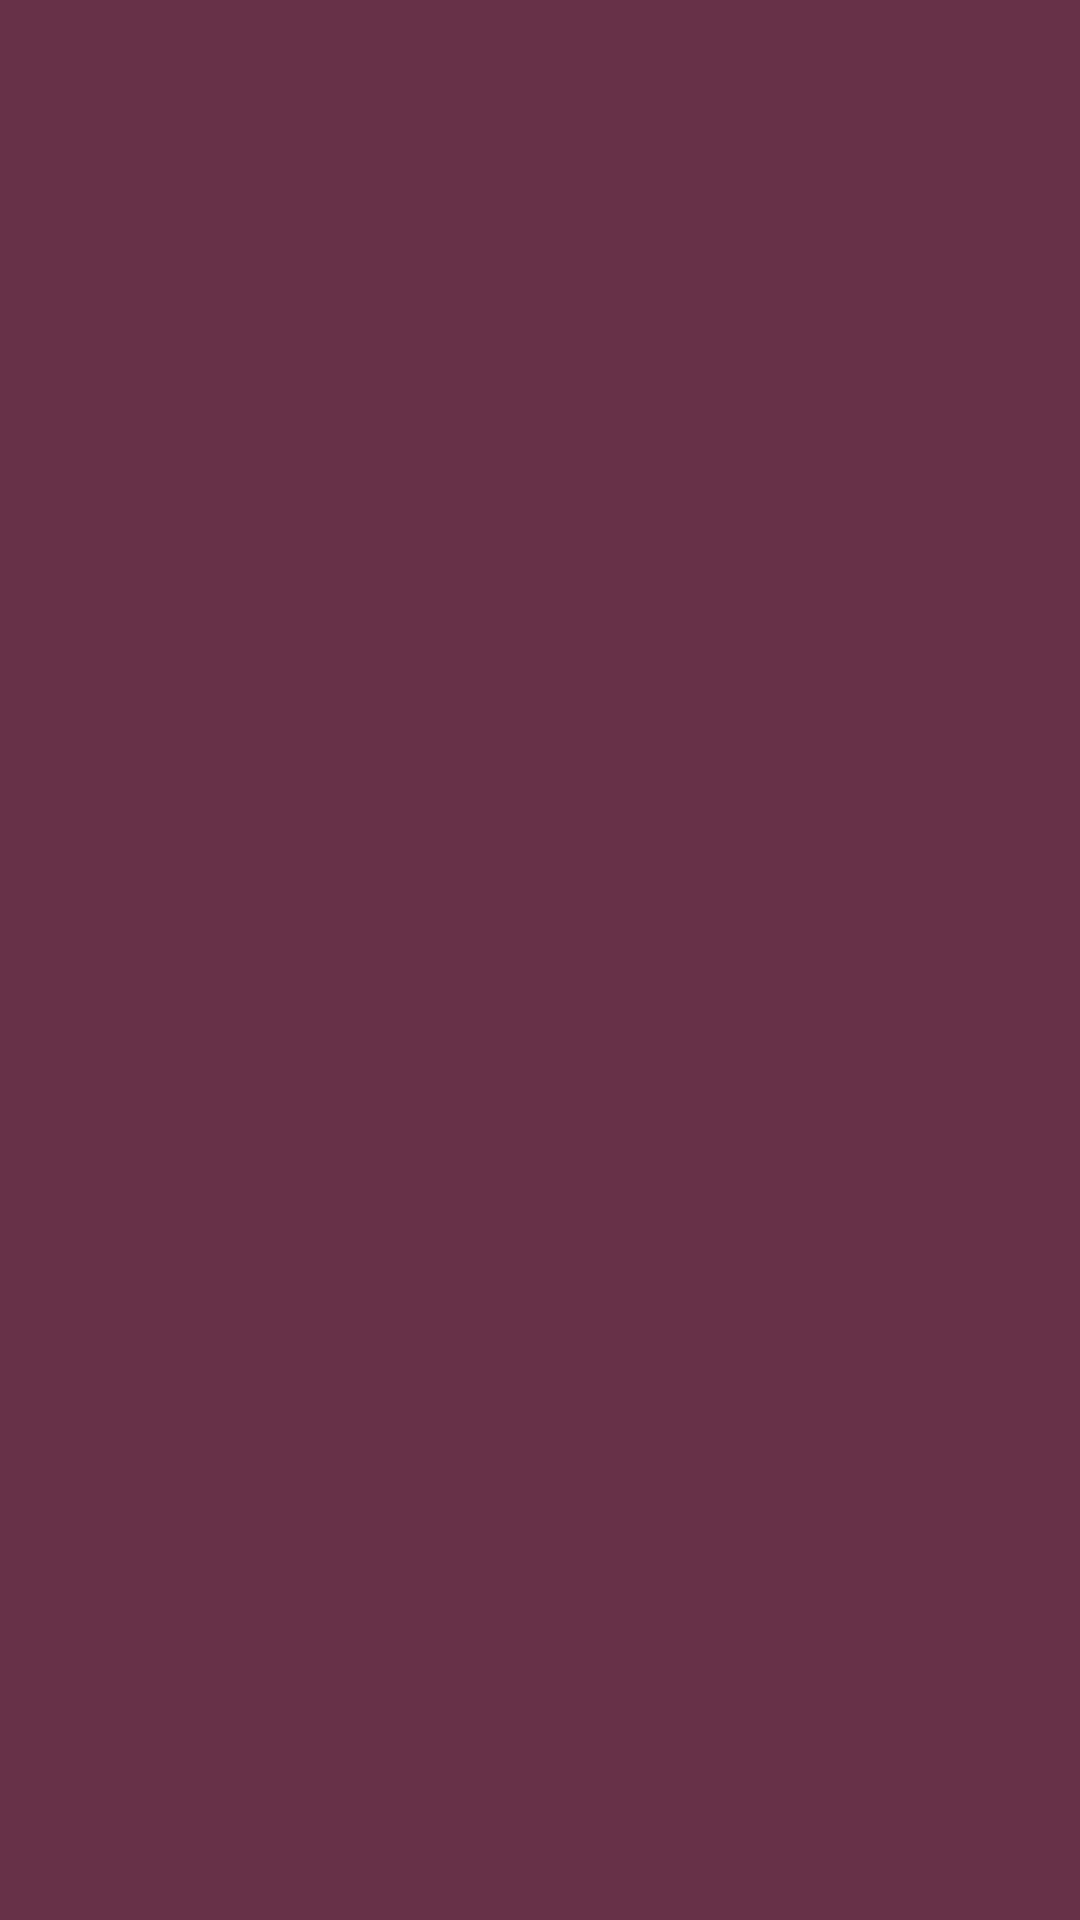 1080x1920 Old Mauve Solid Color Background